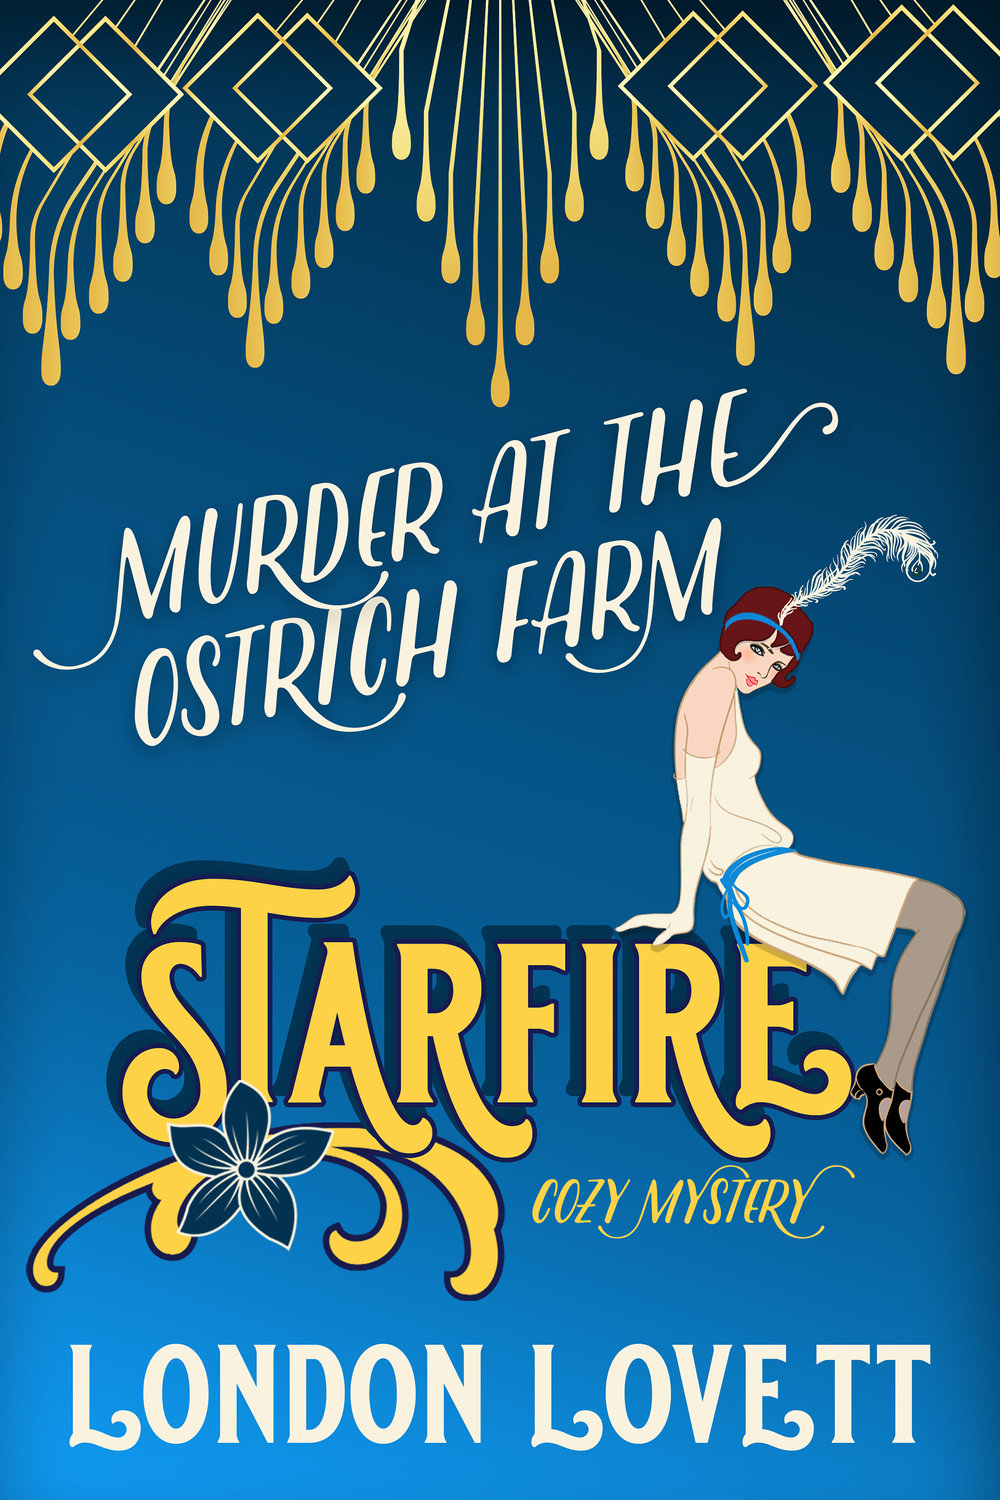 Murder at the Ostrich Farm - Full blurb TBAAvailable May 13thPre-order on: Amazon iBooks Nook Kobo